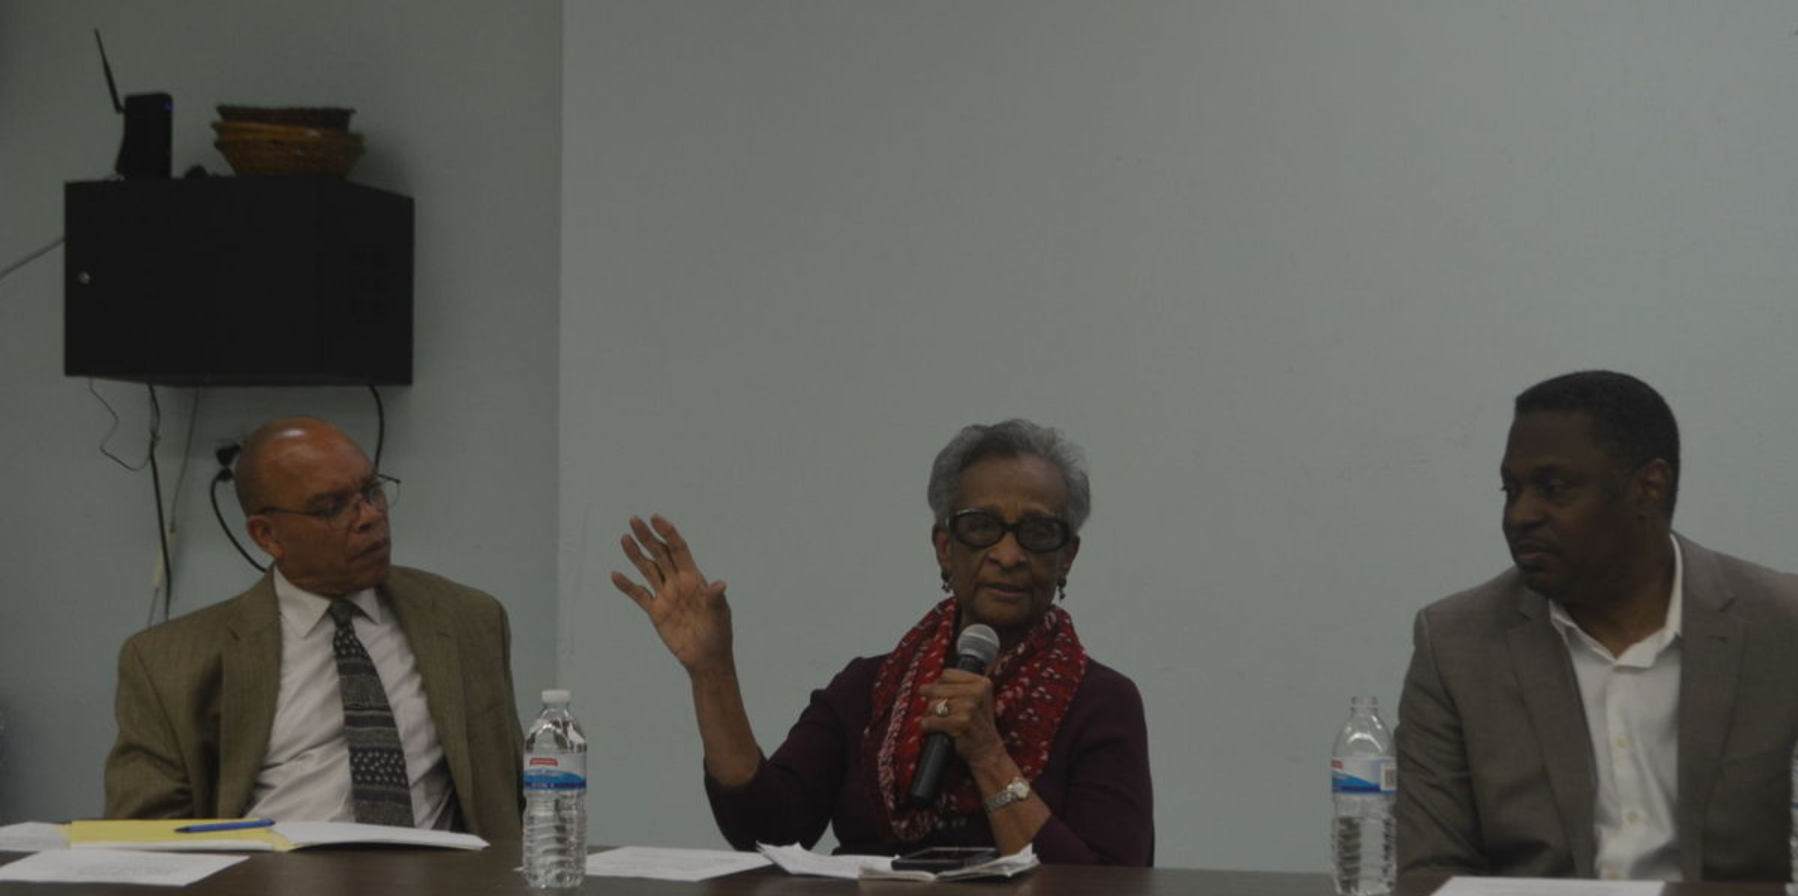 """The Rev. Ralph Blanks, a minister at Vine Memorial Baptist Church; Bishop Audrey Brunson, pastor of Church of the Open Door; and the Rev. Gregory Holston, pastor of New Vision United Methodist Church and the executive director of POWER (Philadelphians Organized to Witness, Empower and Rebuild); served as panelists at a discussion on """"The Role of the Black Church in the Trump Era."""" - TRIBUNE PHOTO BY SAMARIA BAILEY"""